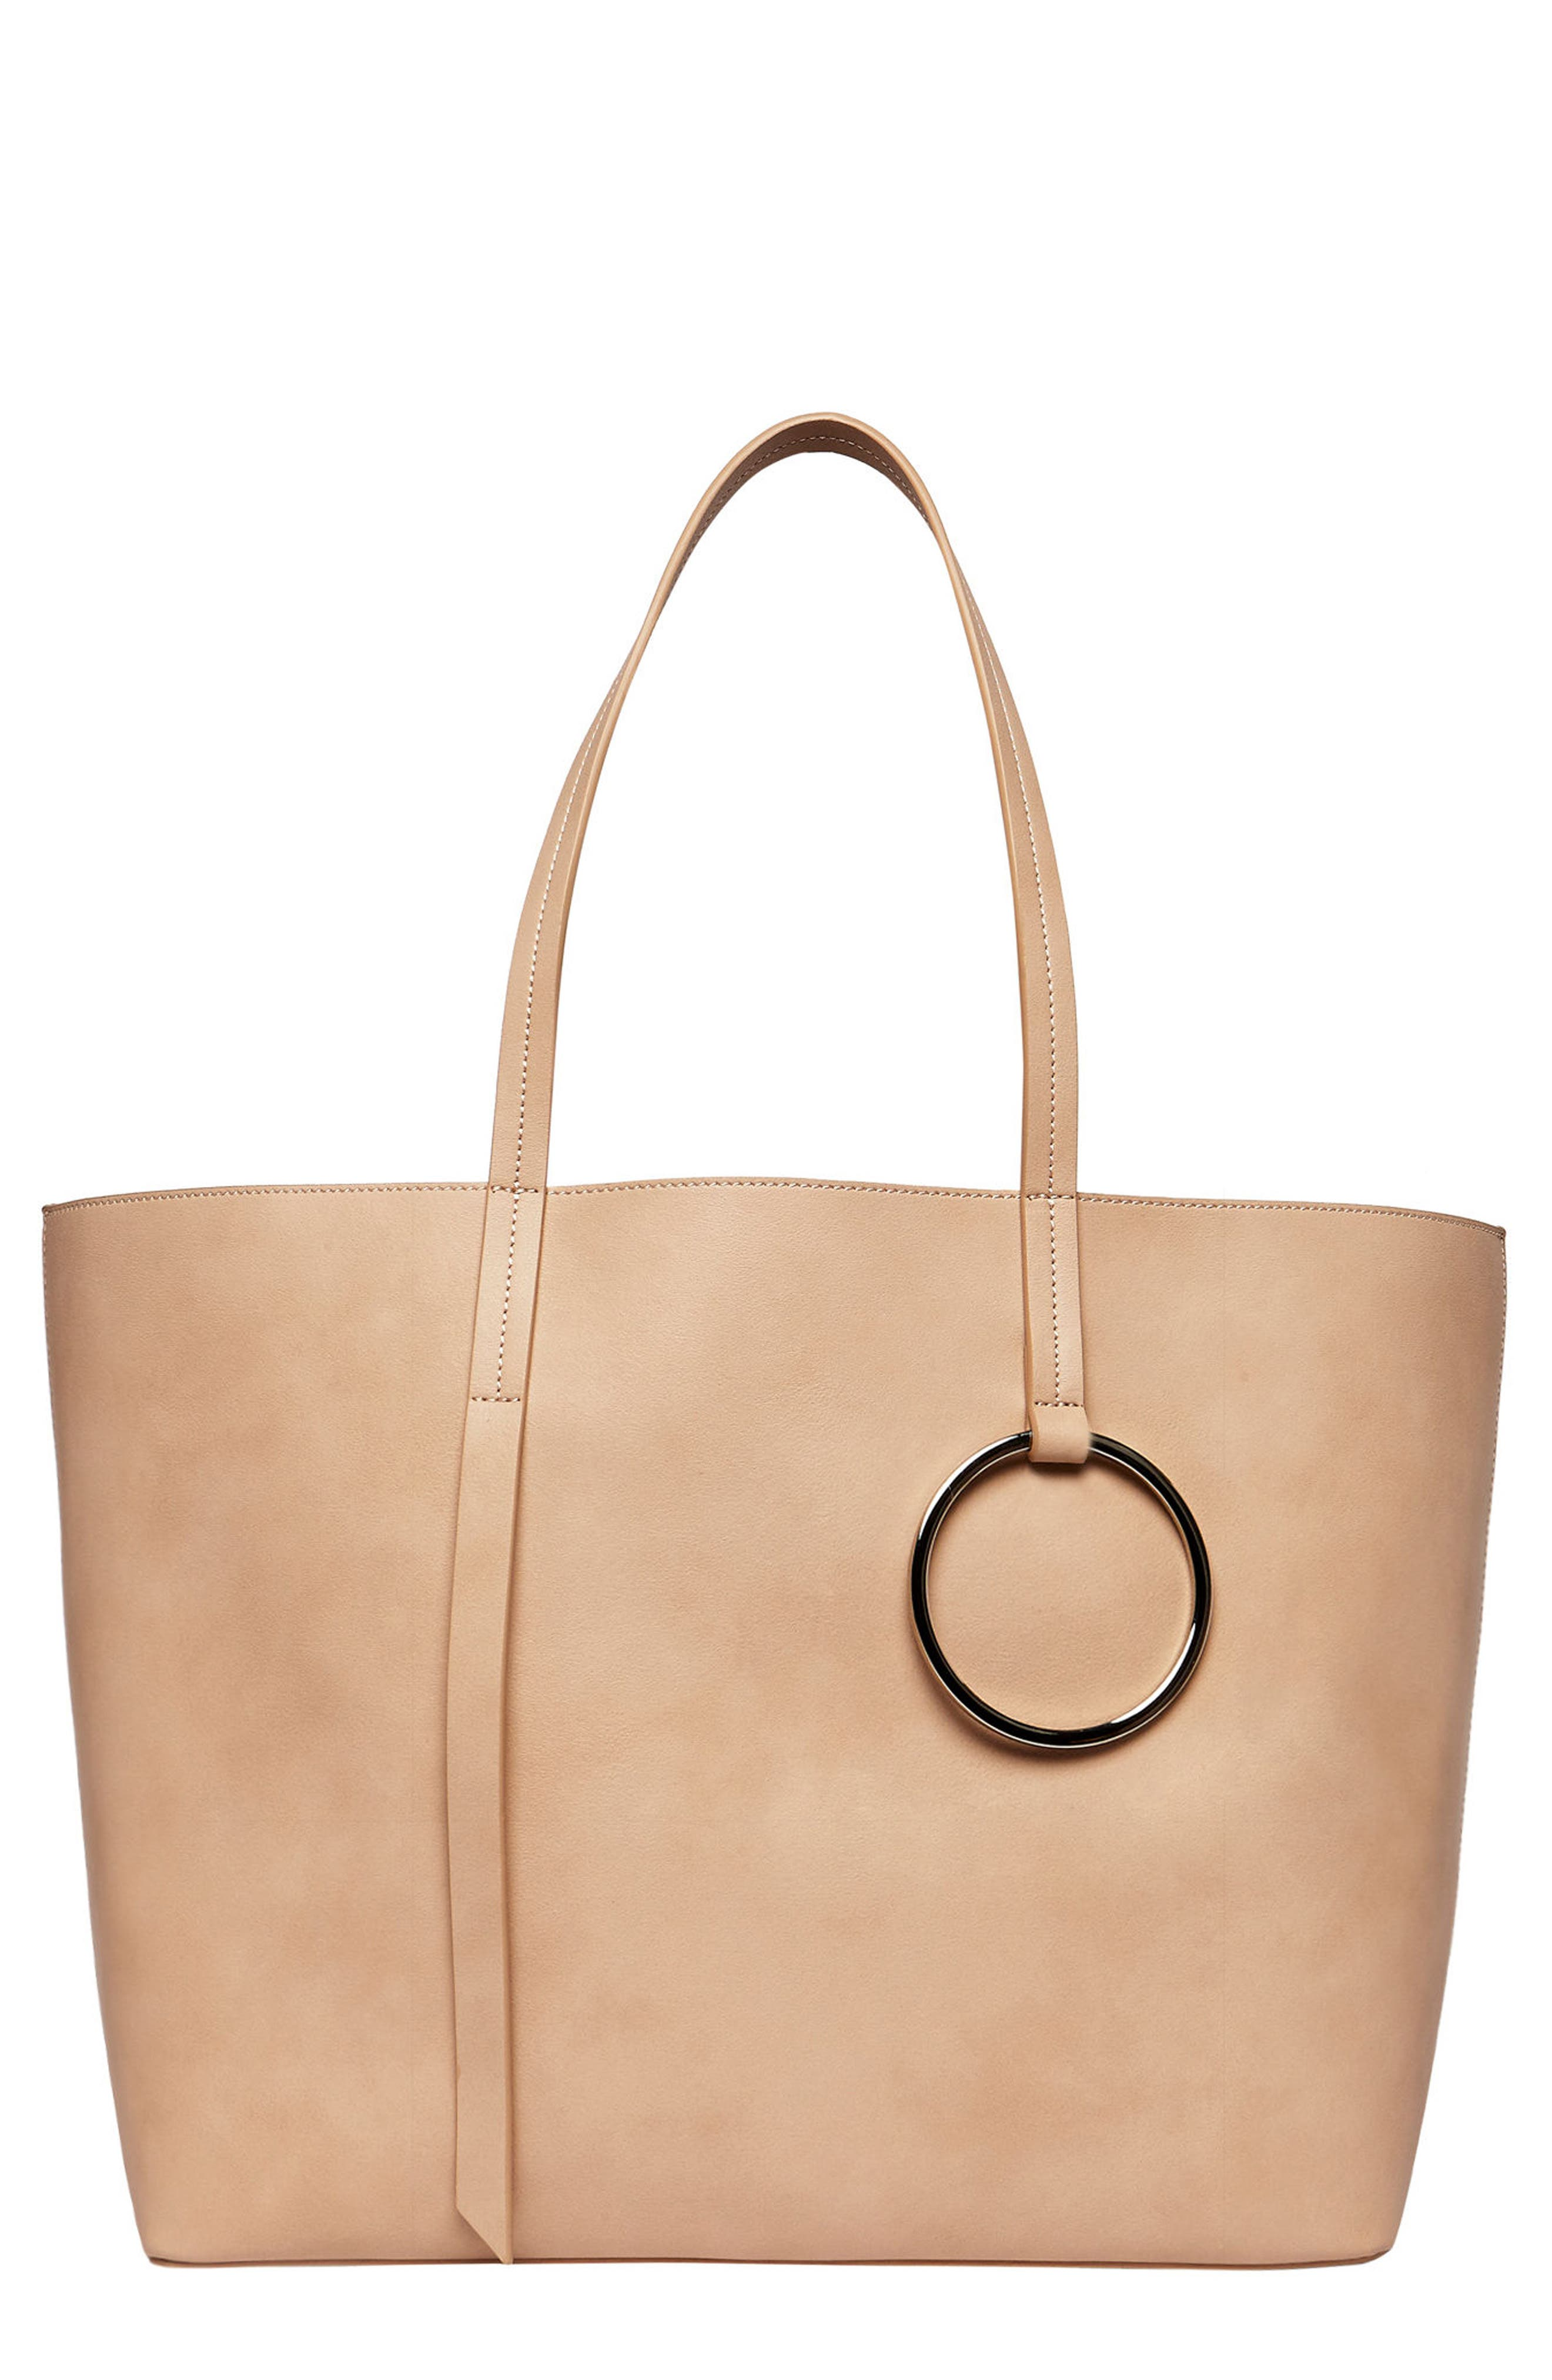 Urban Originals Soul Vegan Leather Tote